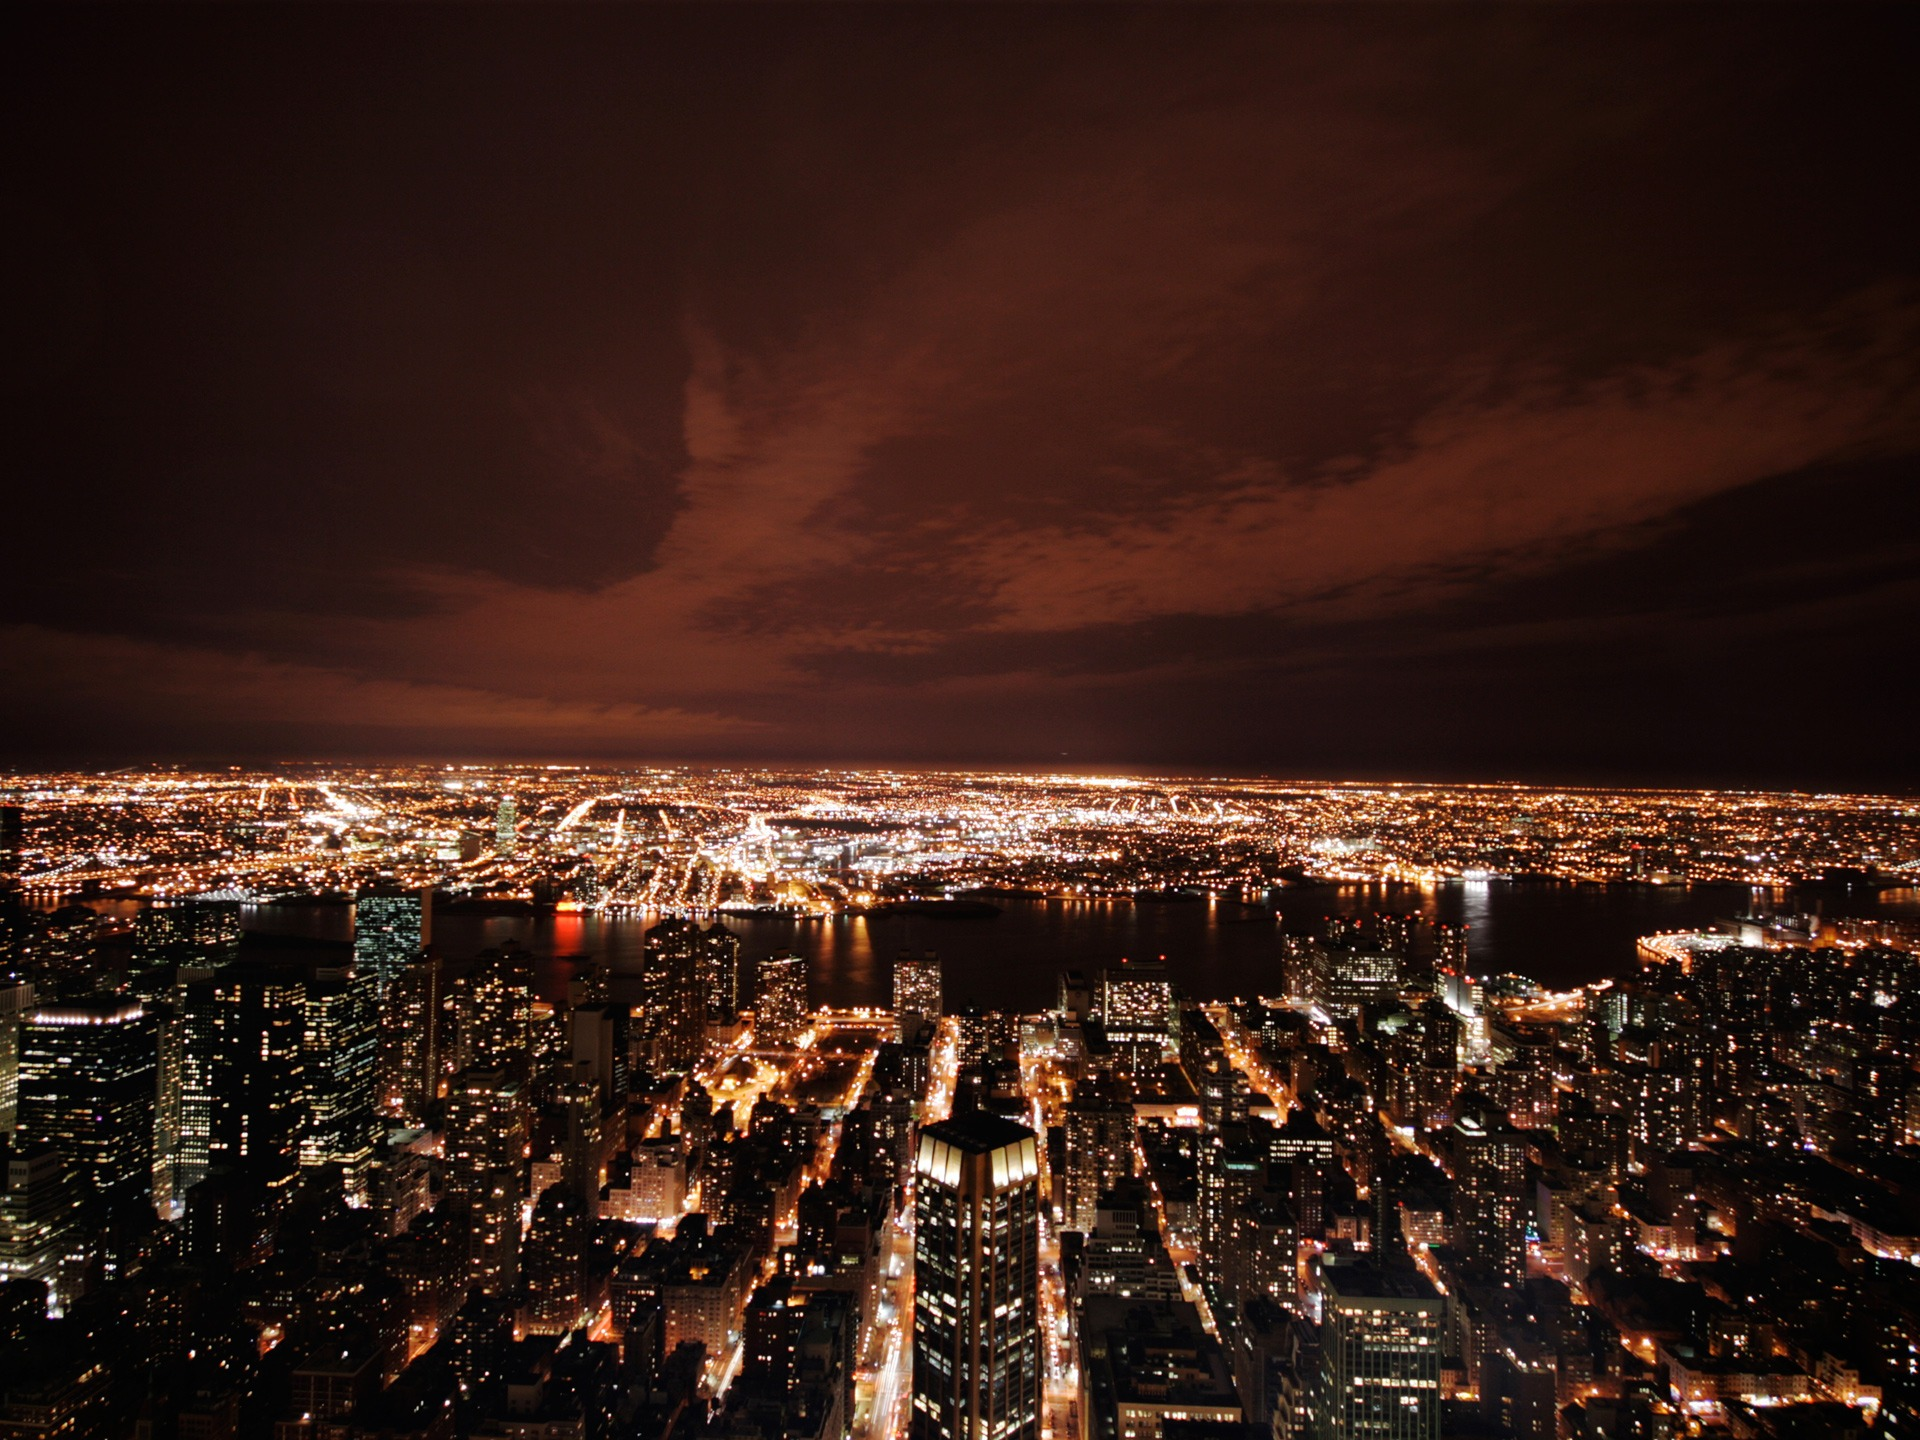 New York At Night Wallpaper United States World Wallpapers In Jpg Format For Free Download